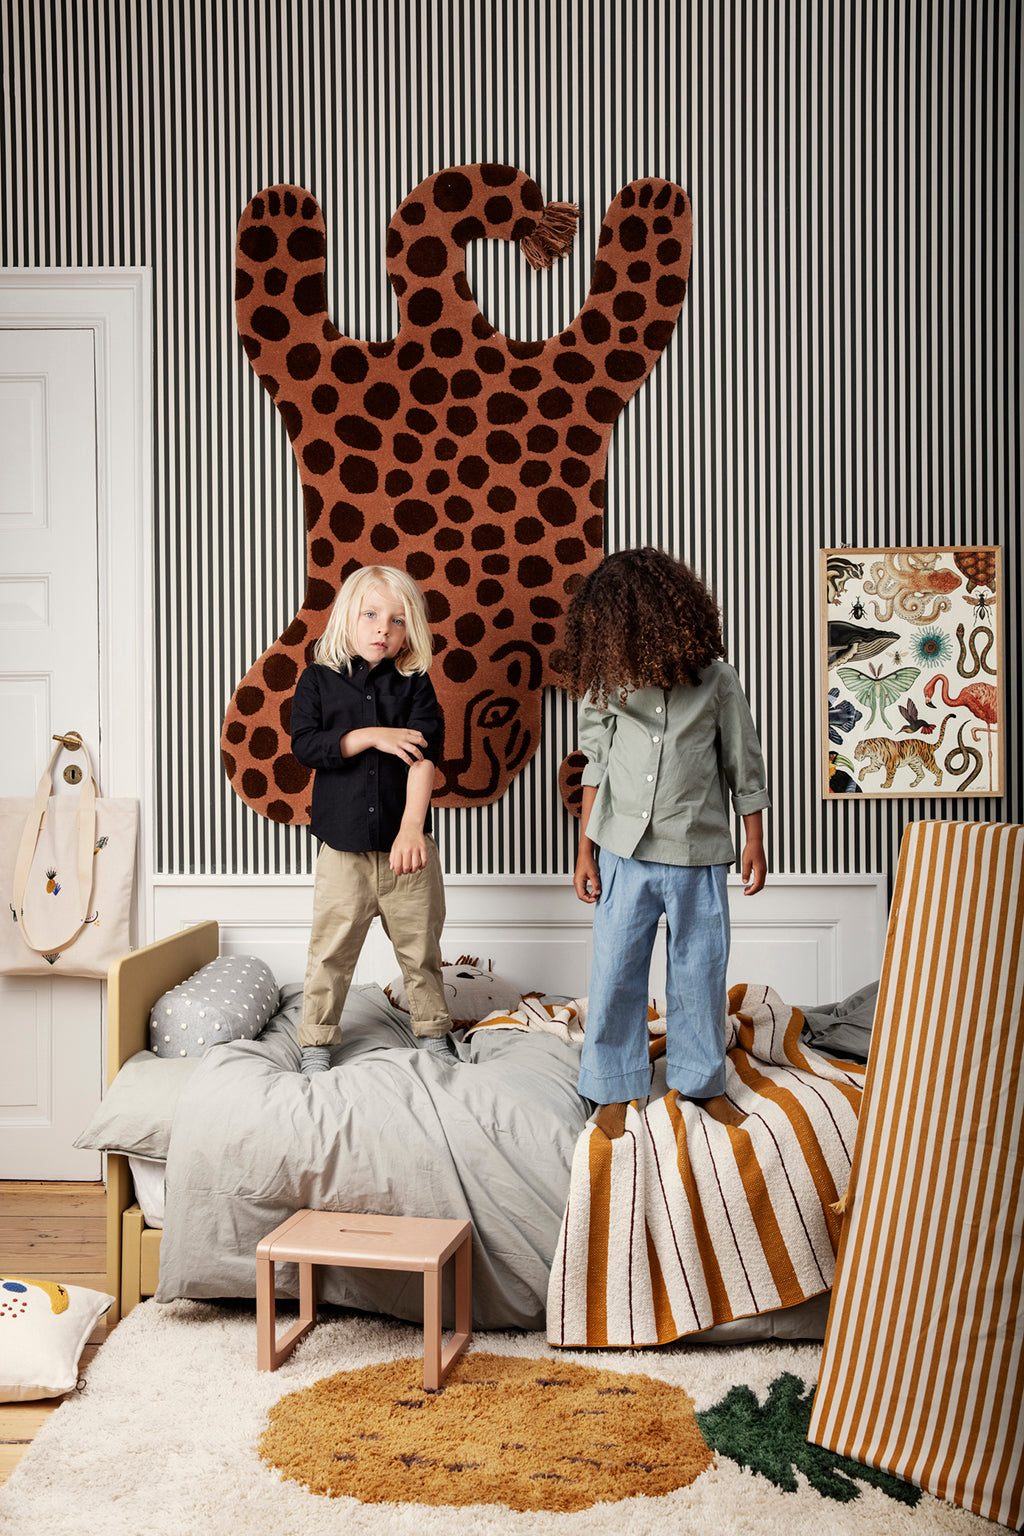 Ferm Living Safari Tufted Rug - Leopard - 3